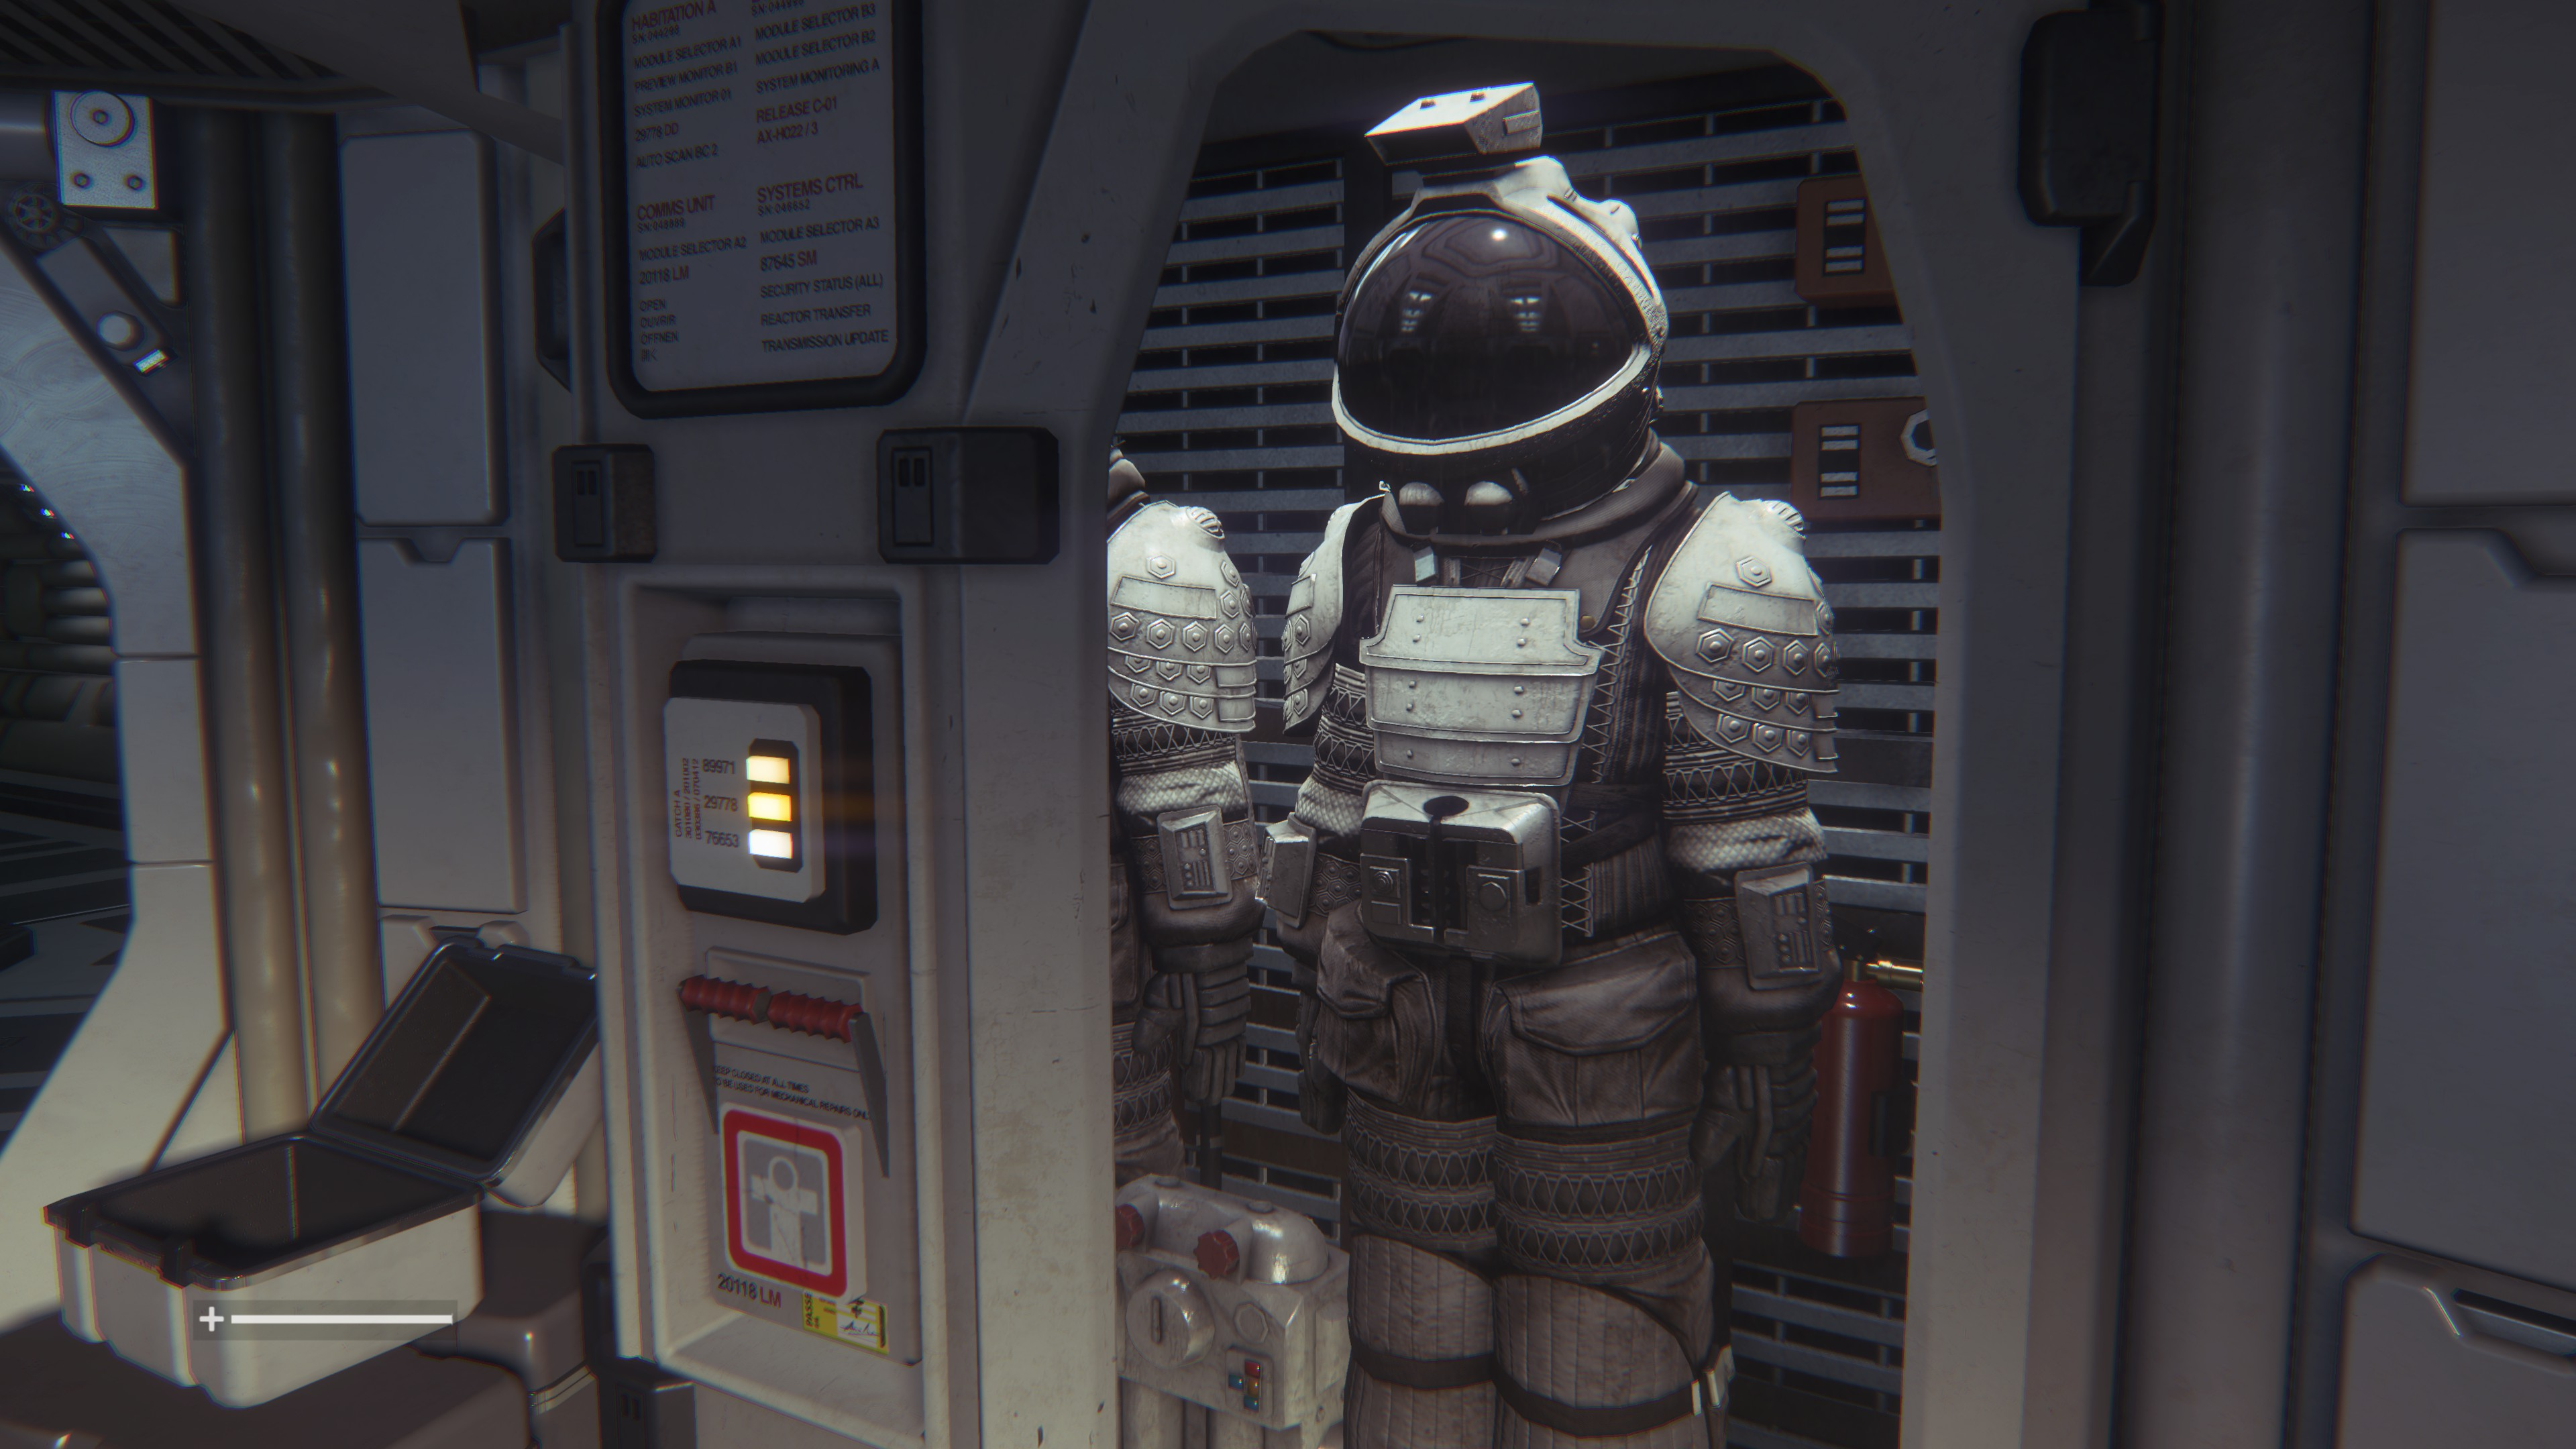 "Unfortunately, VR makes for <a href=""https://arstechnica.com/gaming/2014/11/the-oculus-rift-makes-elite-dangerous-amazing-and-impossible-to-describe/"">terrible screenshots</a>, so here's a non-VR image of <em>Alien: Isolation.</em>"